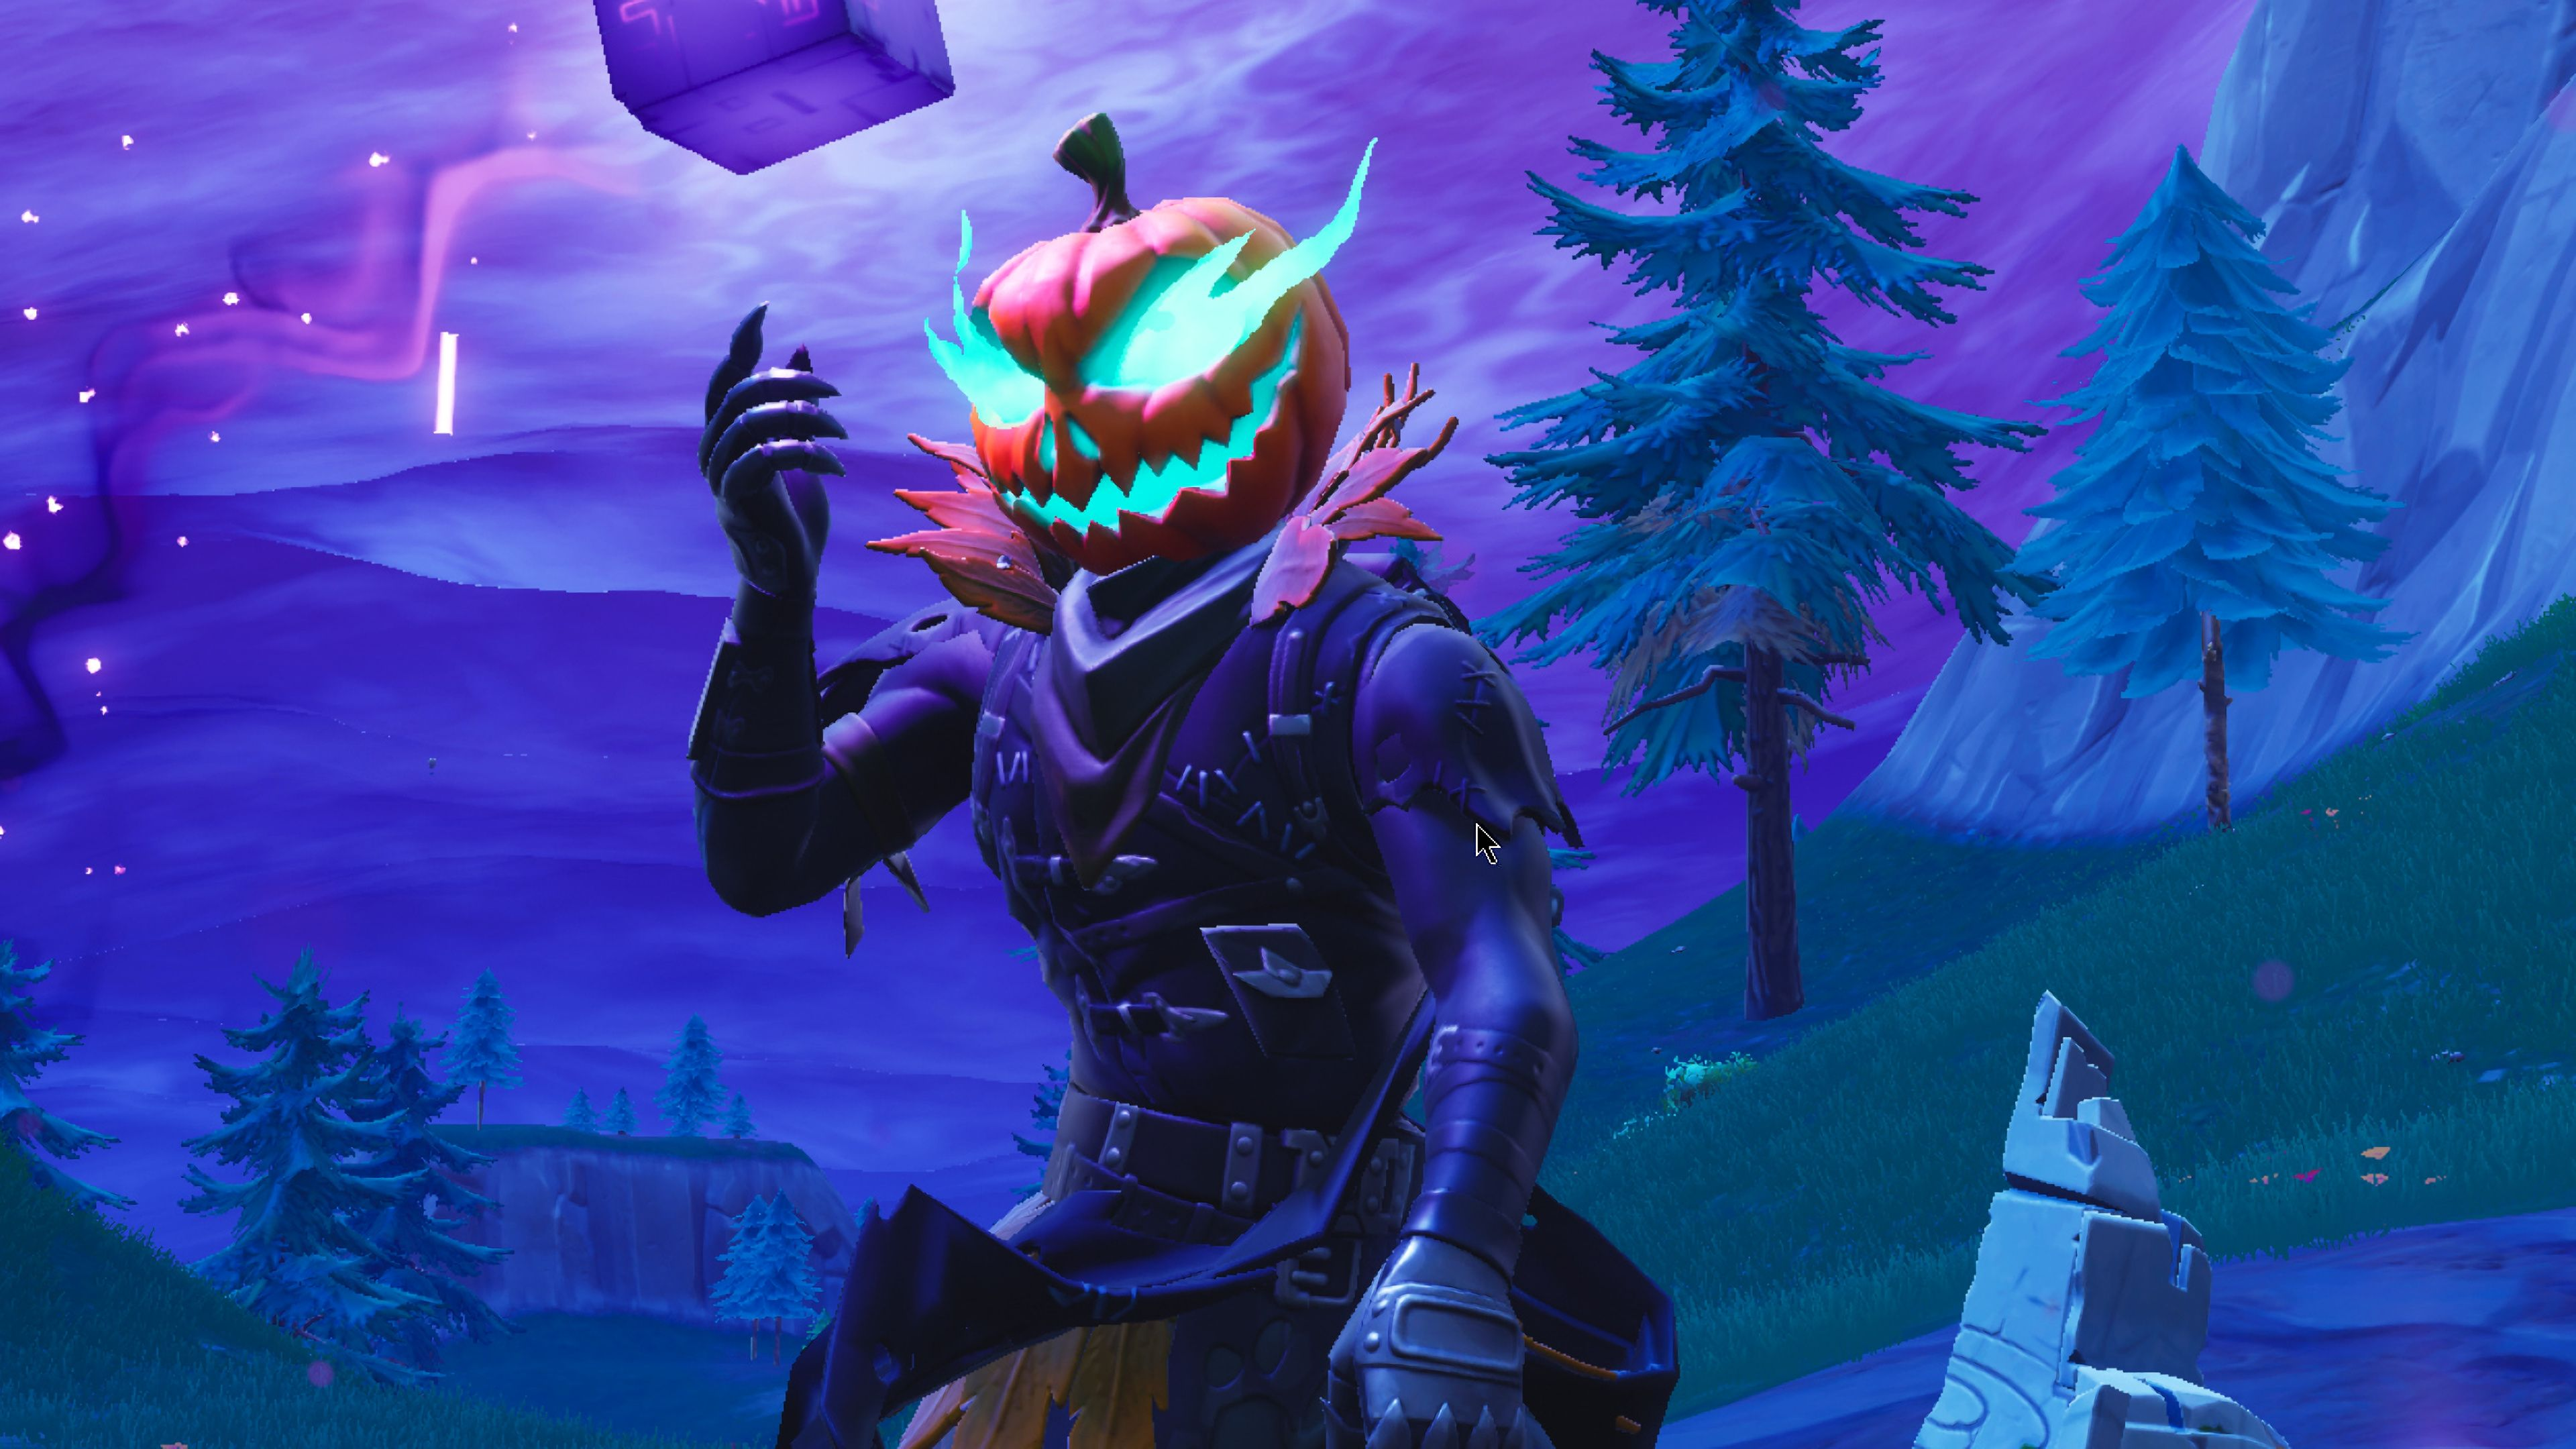 44 Fortnite Halloween 4k Wallpapers On Wallpapersafari